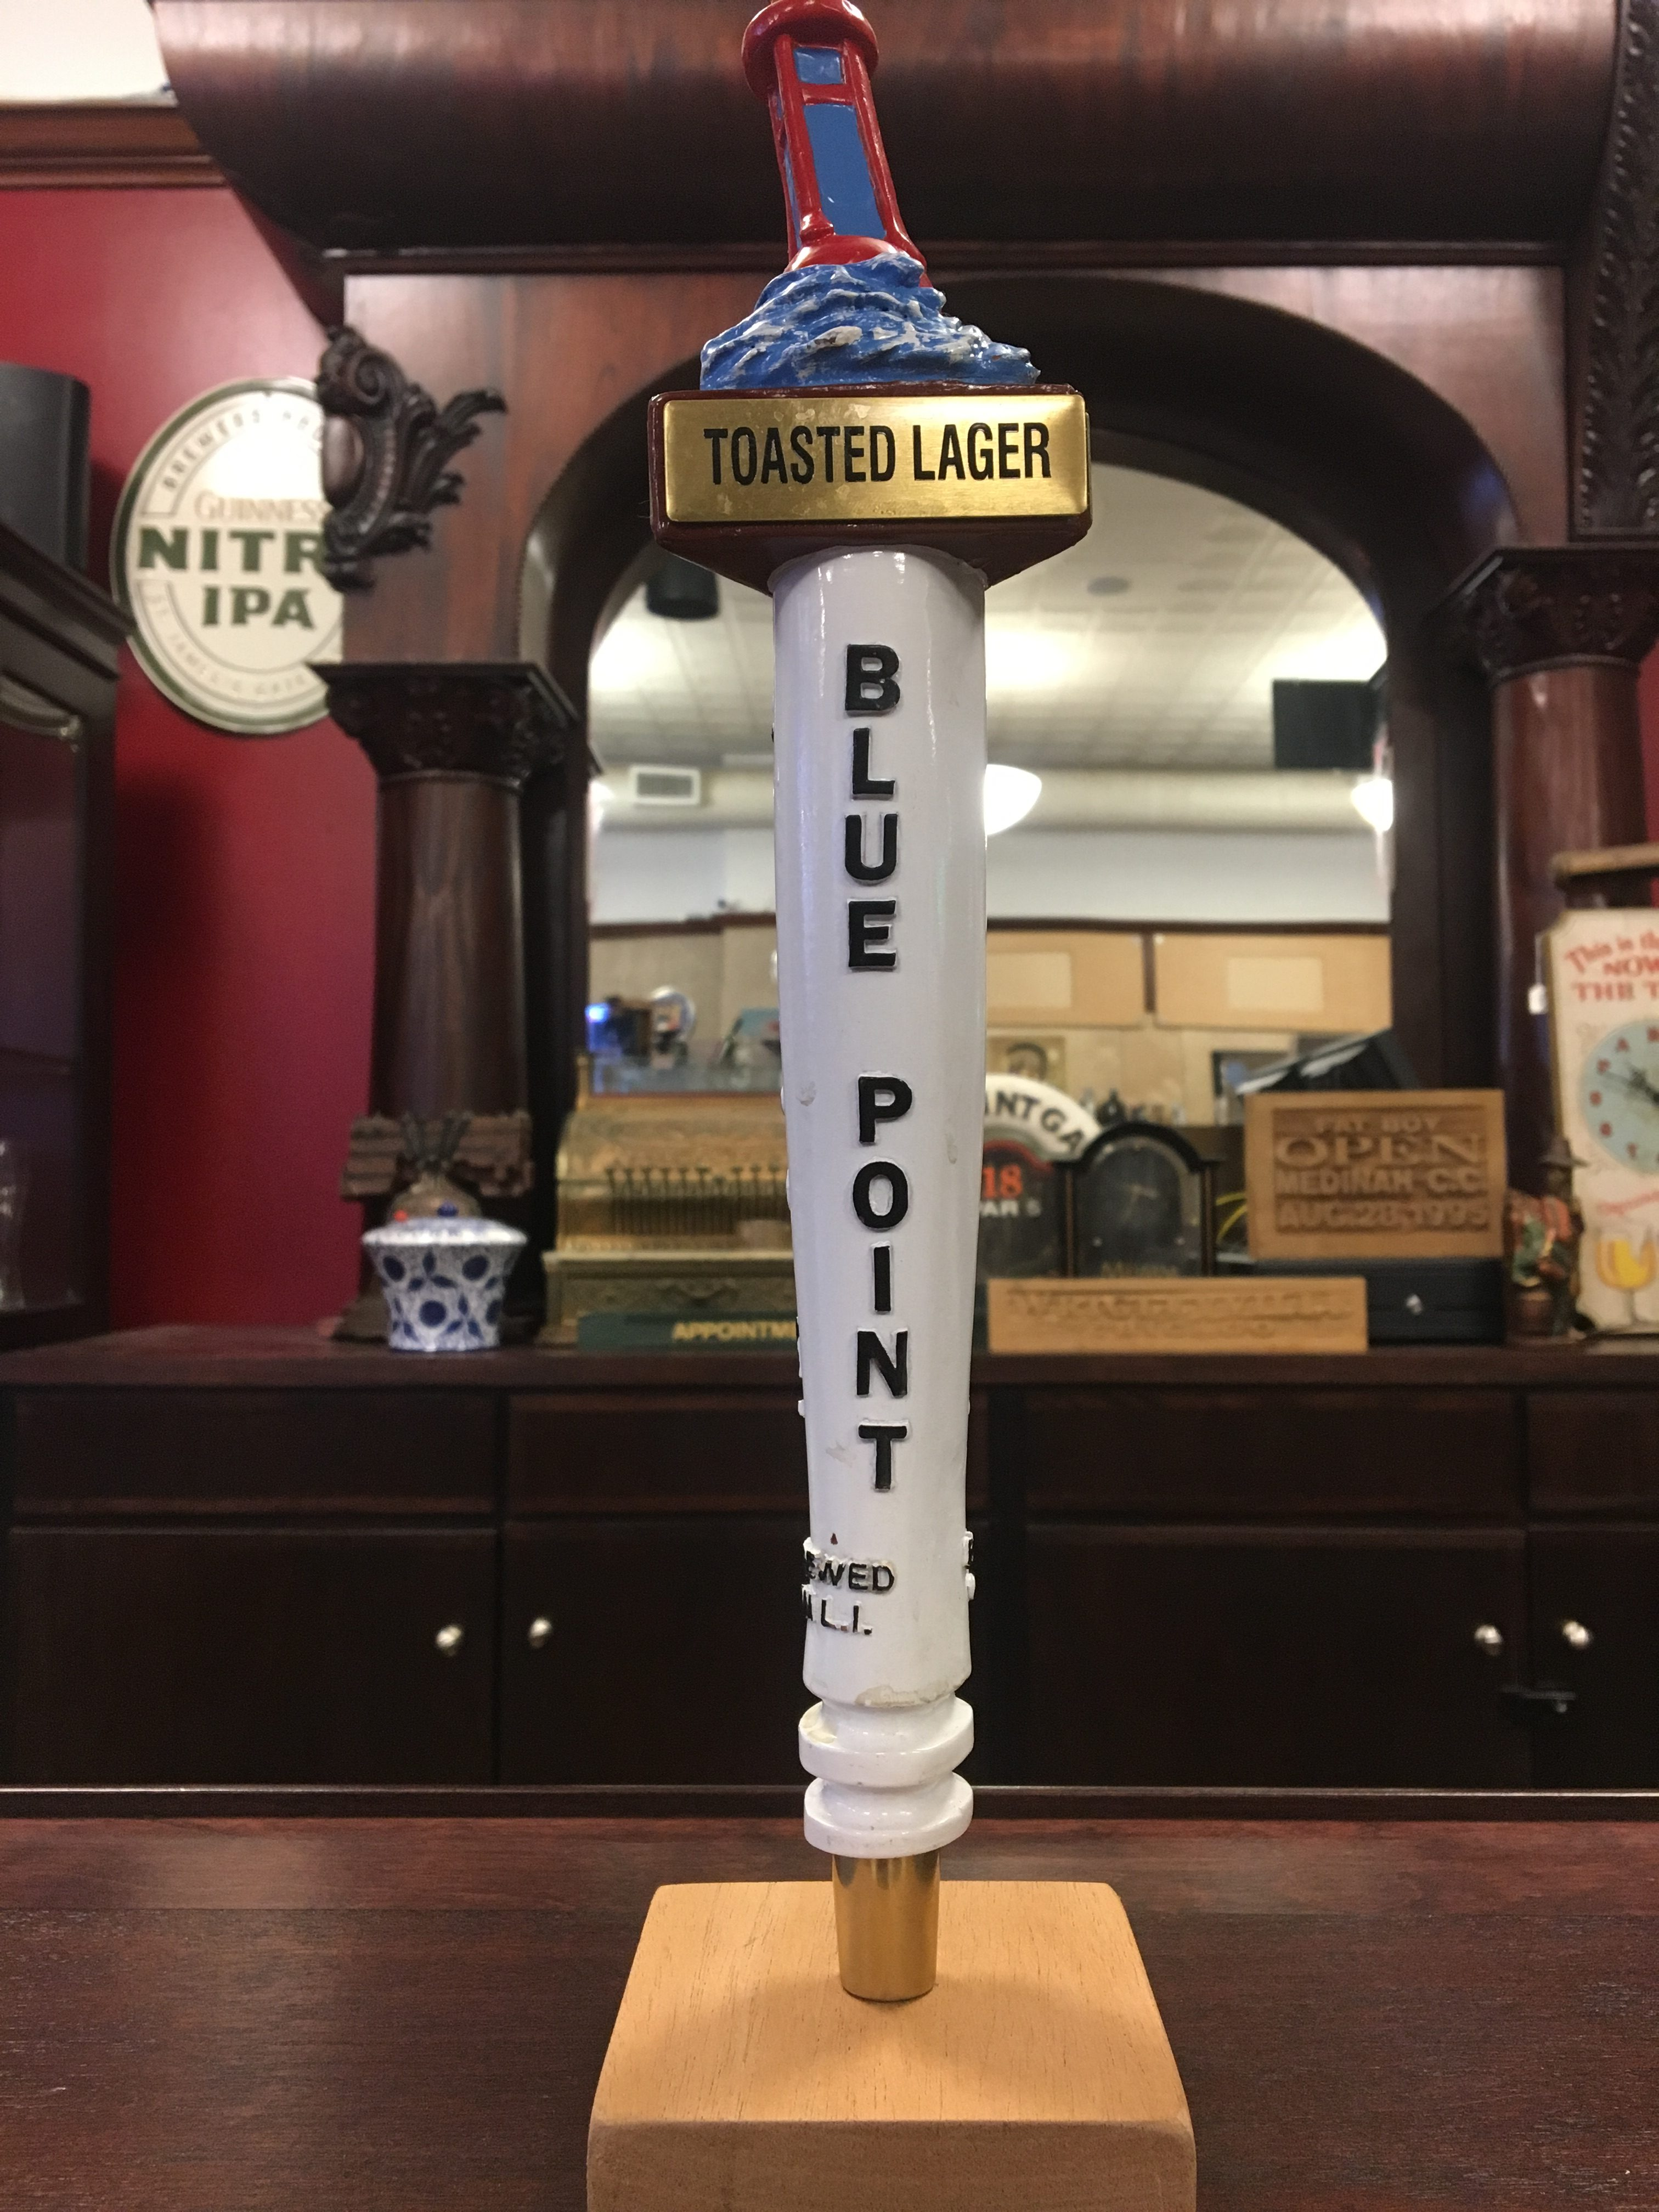 Photo Of Blue Point Brewing Co' Toasted